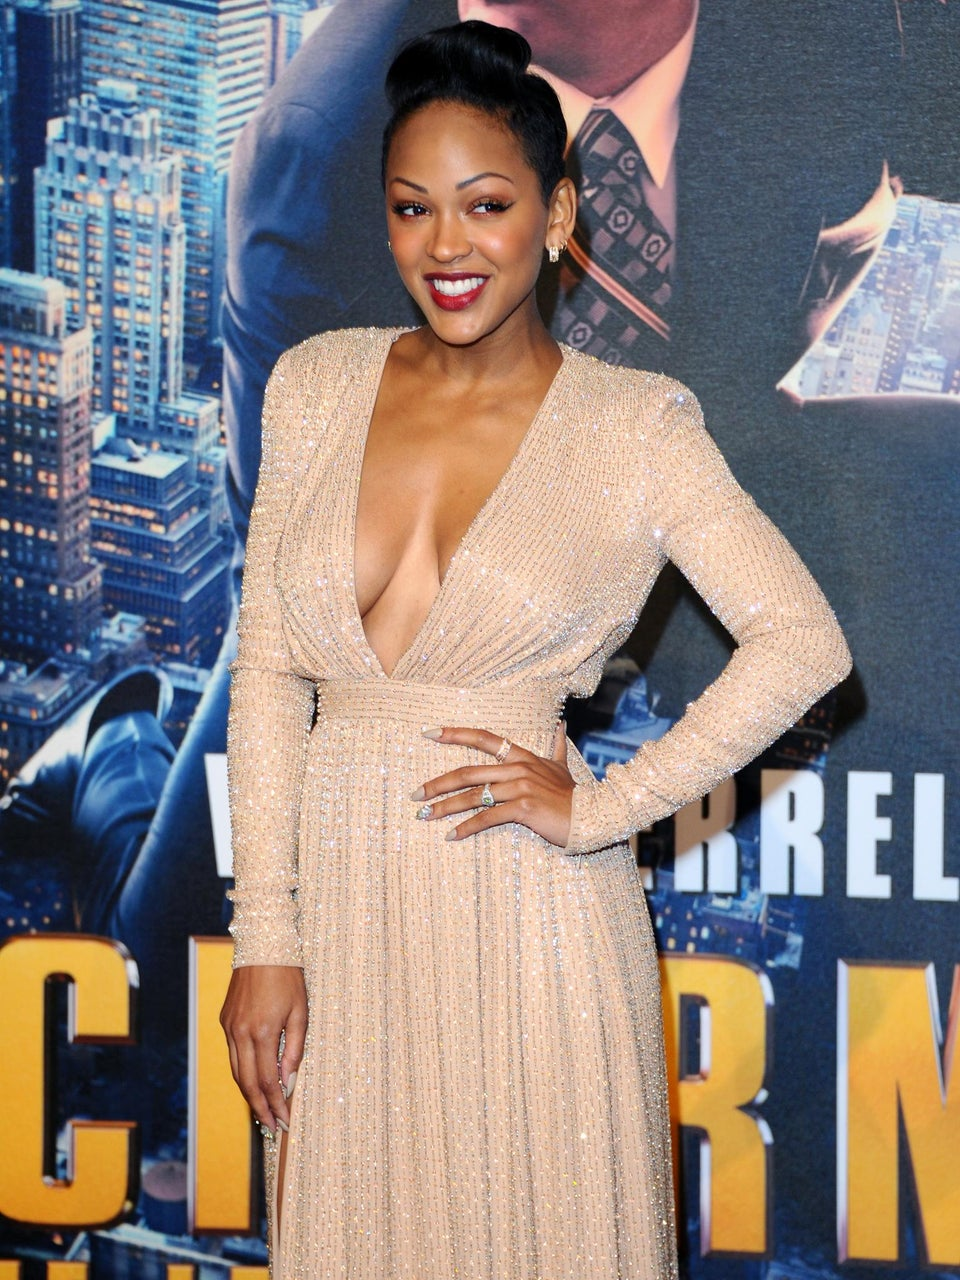 Meagan Good Responds to Christian Critics Over Cleavage